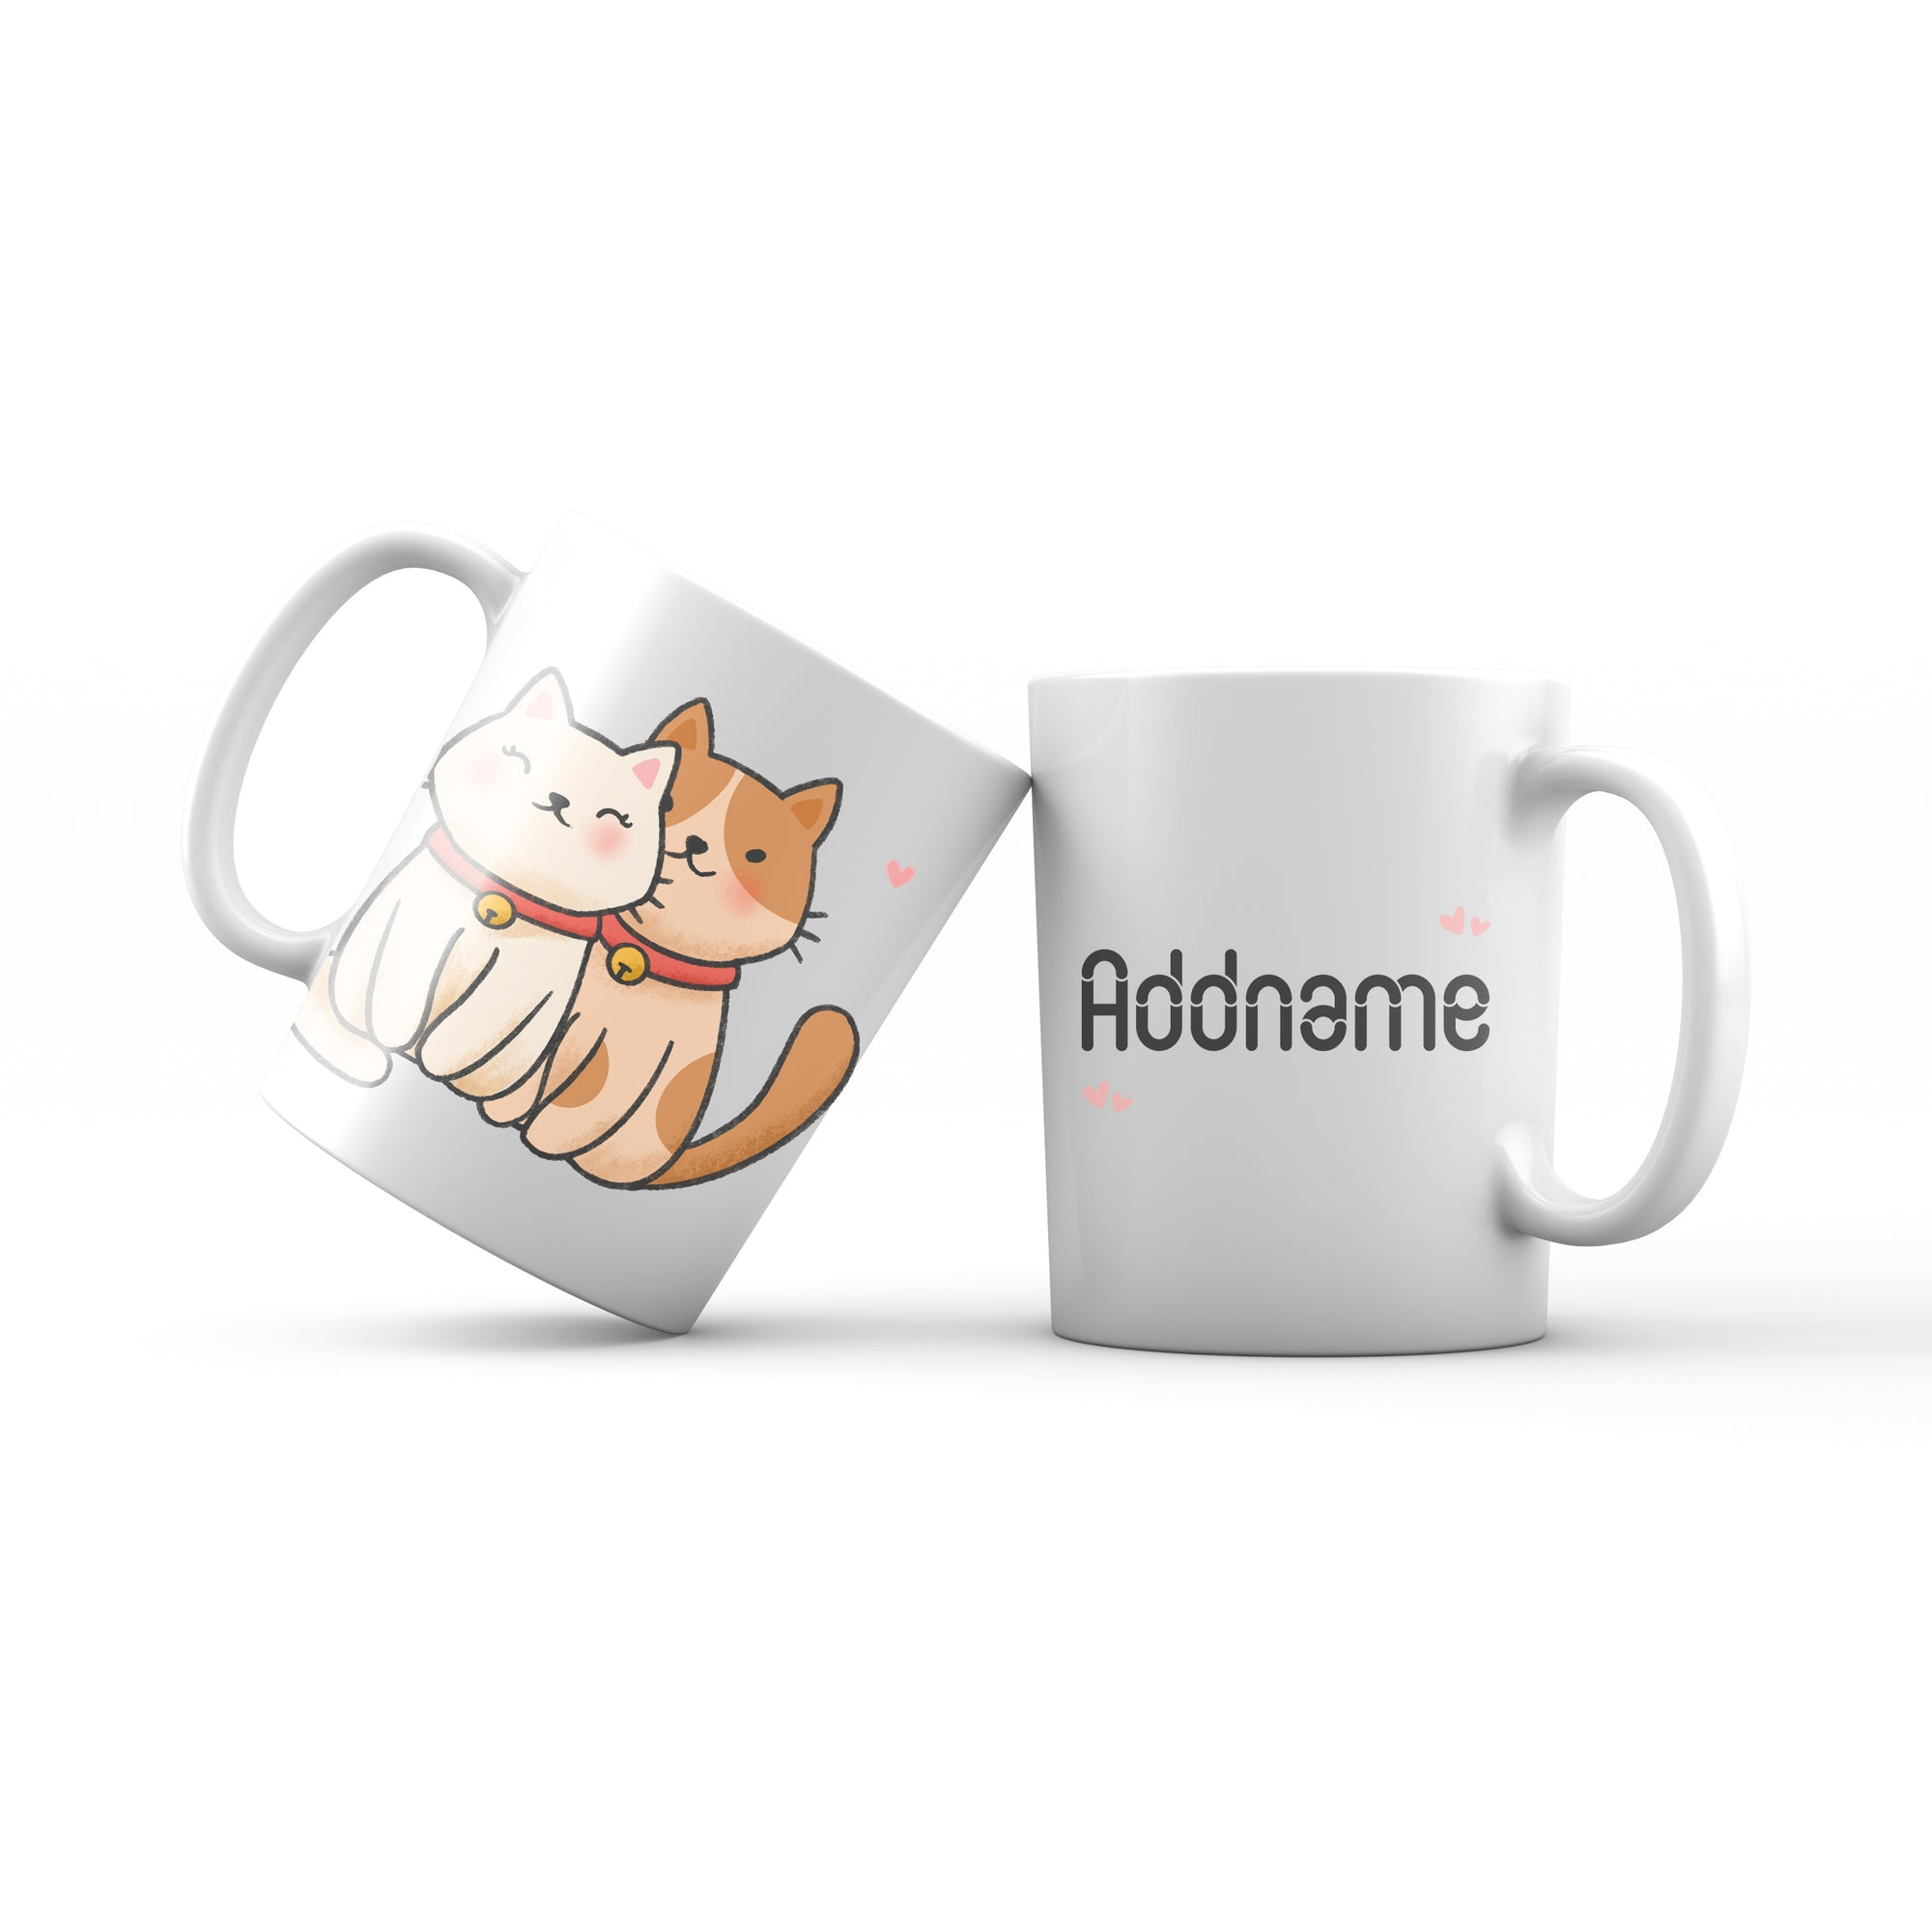 Cute Hand drawn Animals Cats Couple Cat Addname Mug